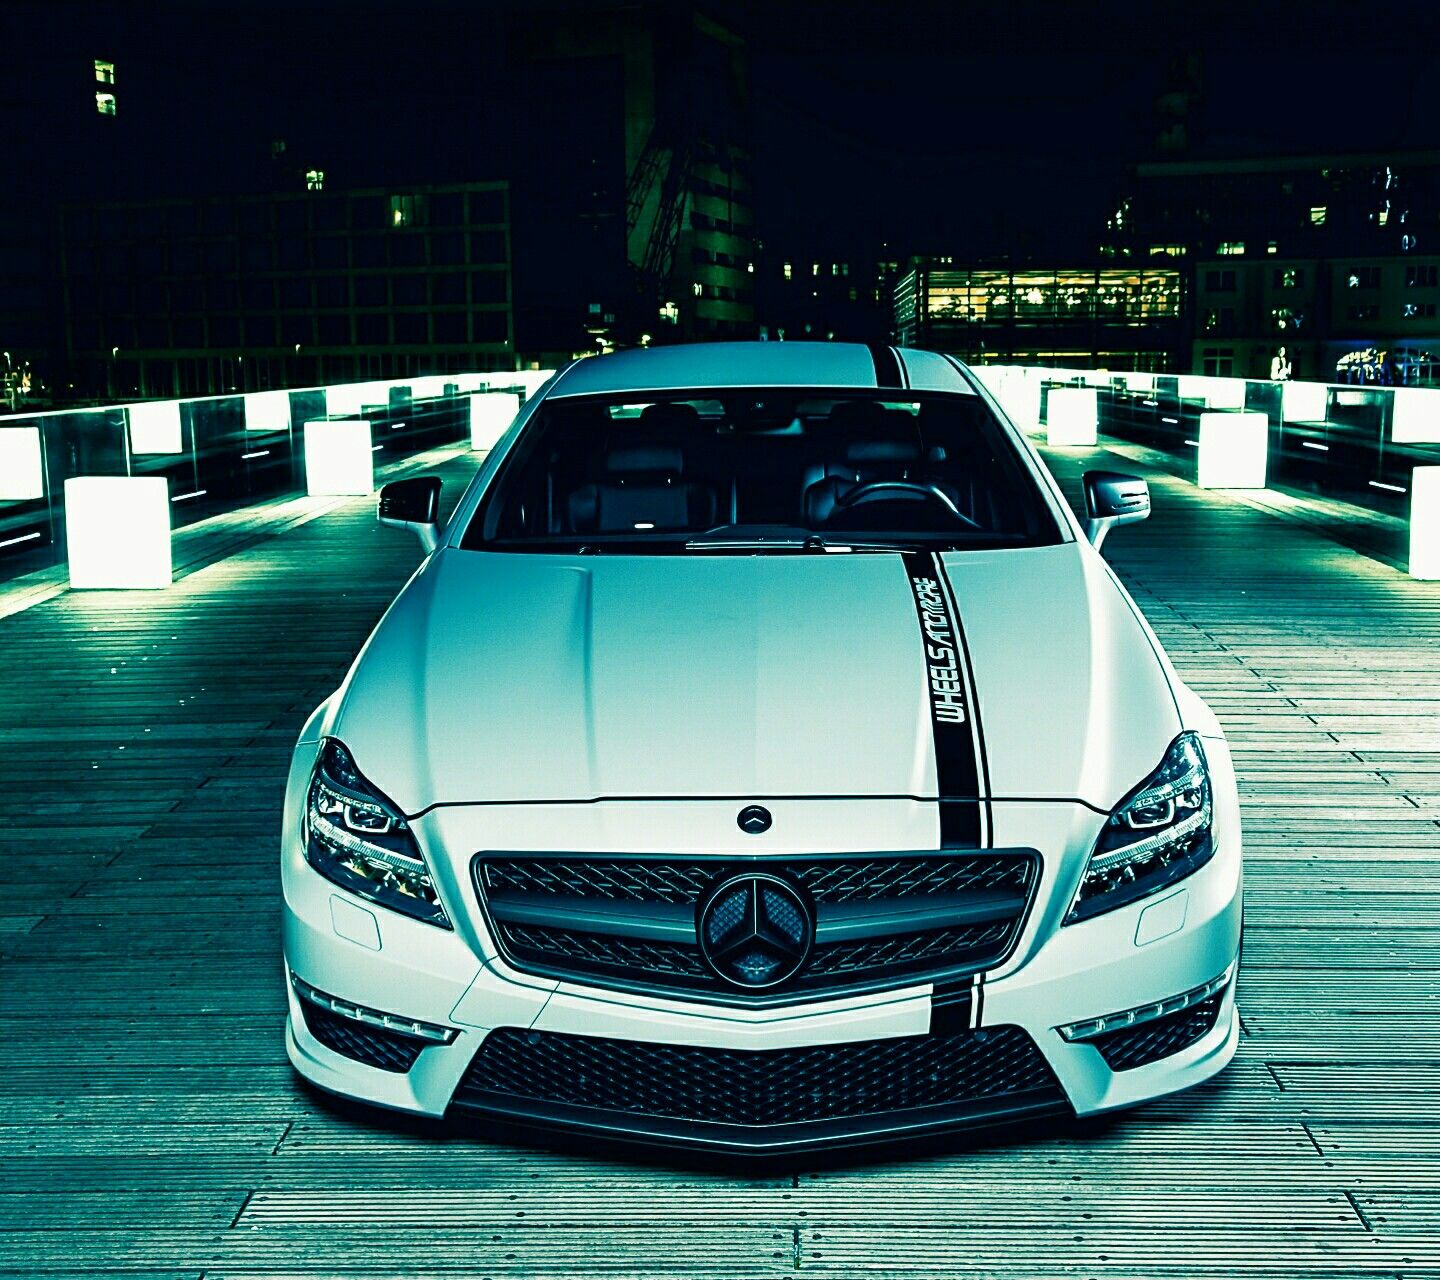 Mercedes Benz Car Wallpaper: Mercedes Car, Cars, Mercedes Cls